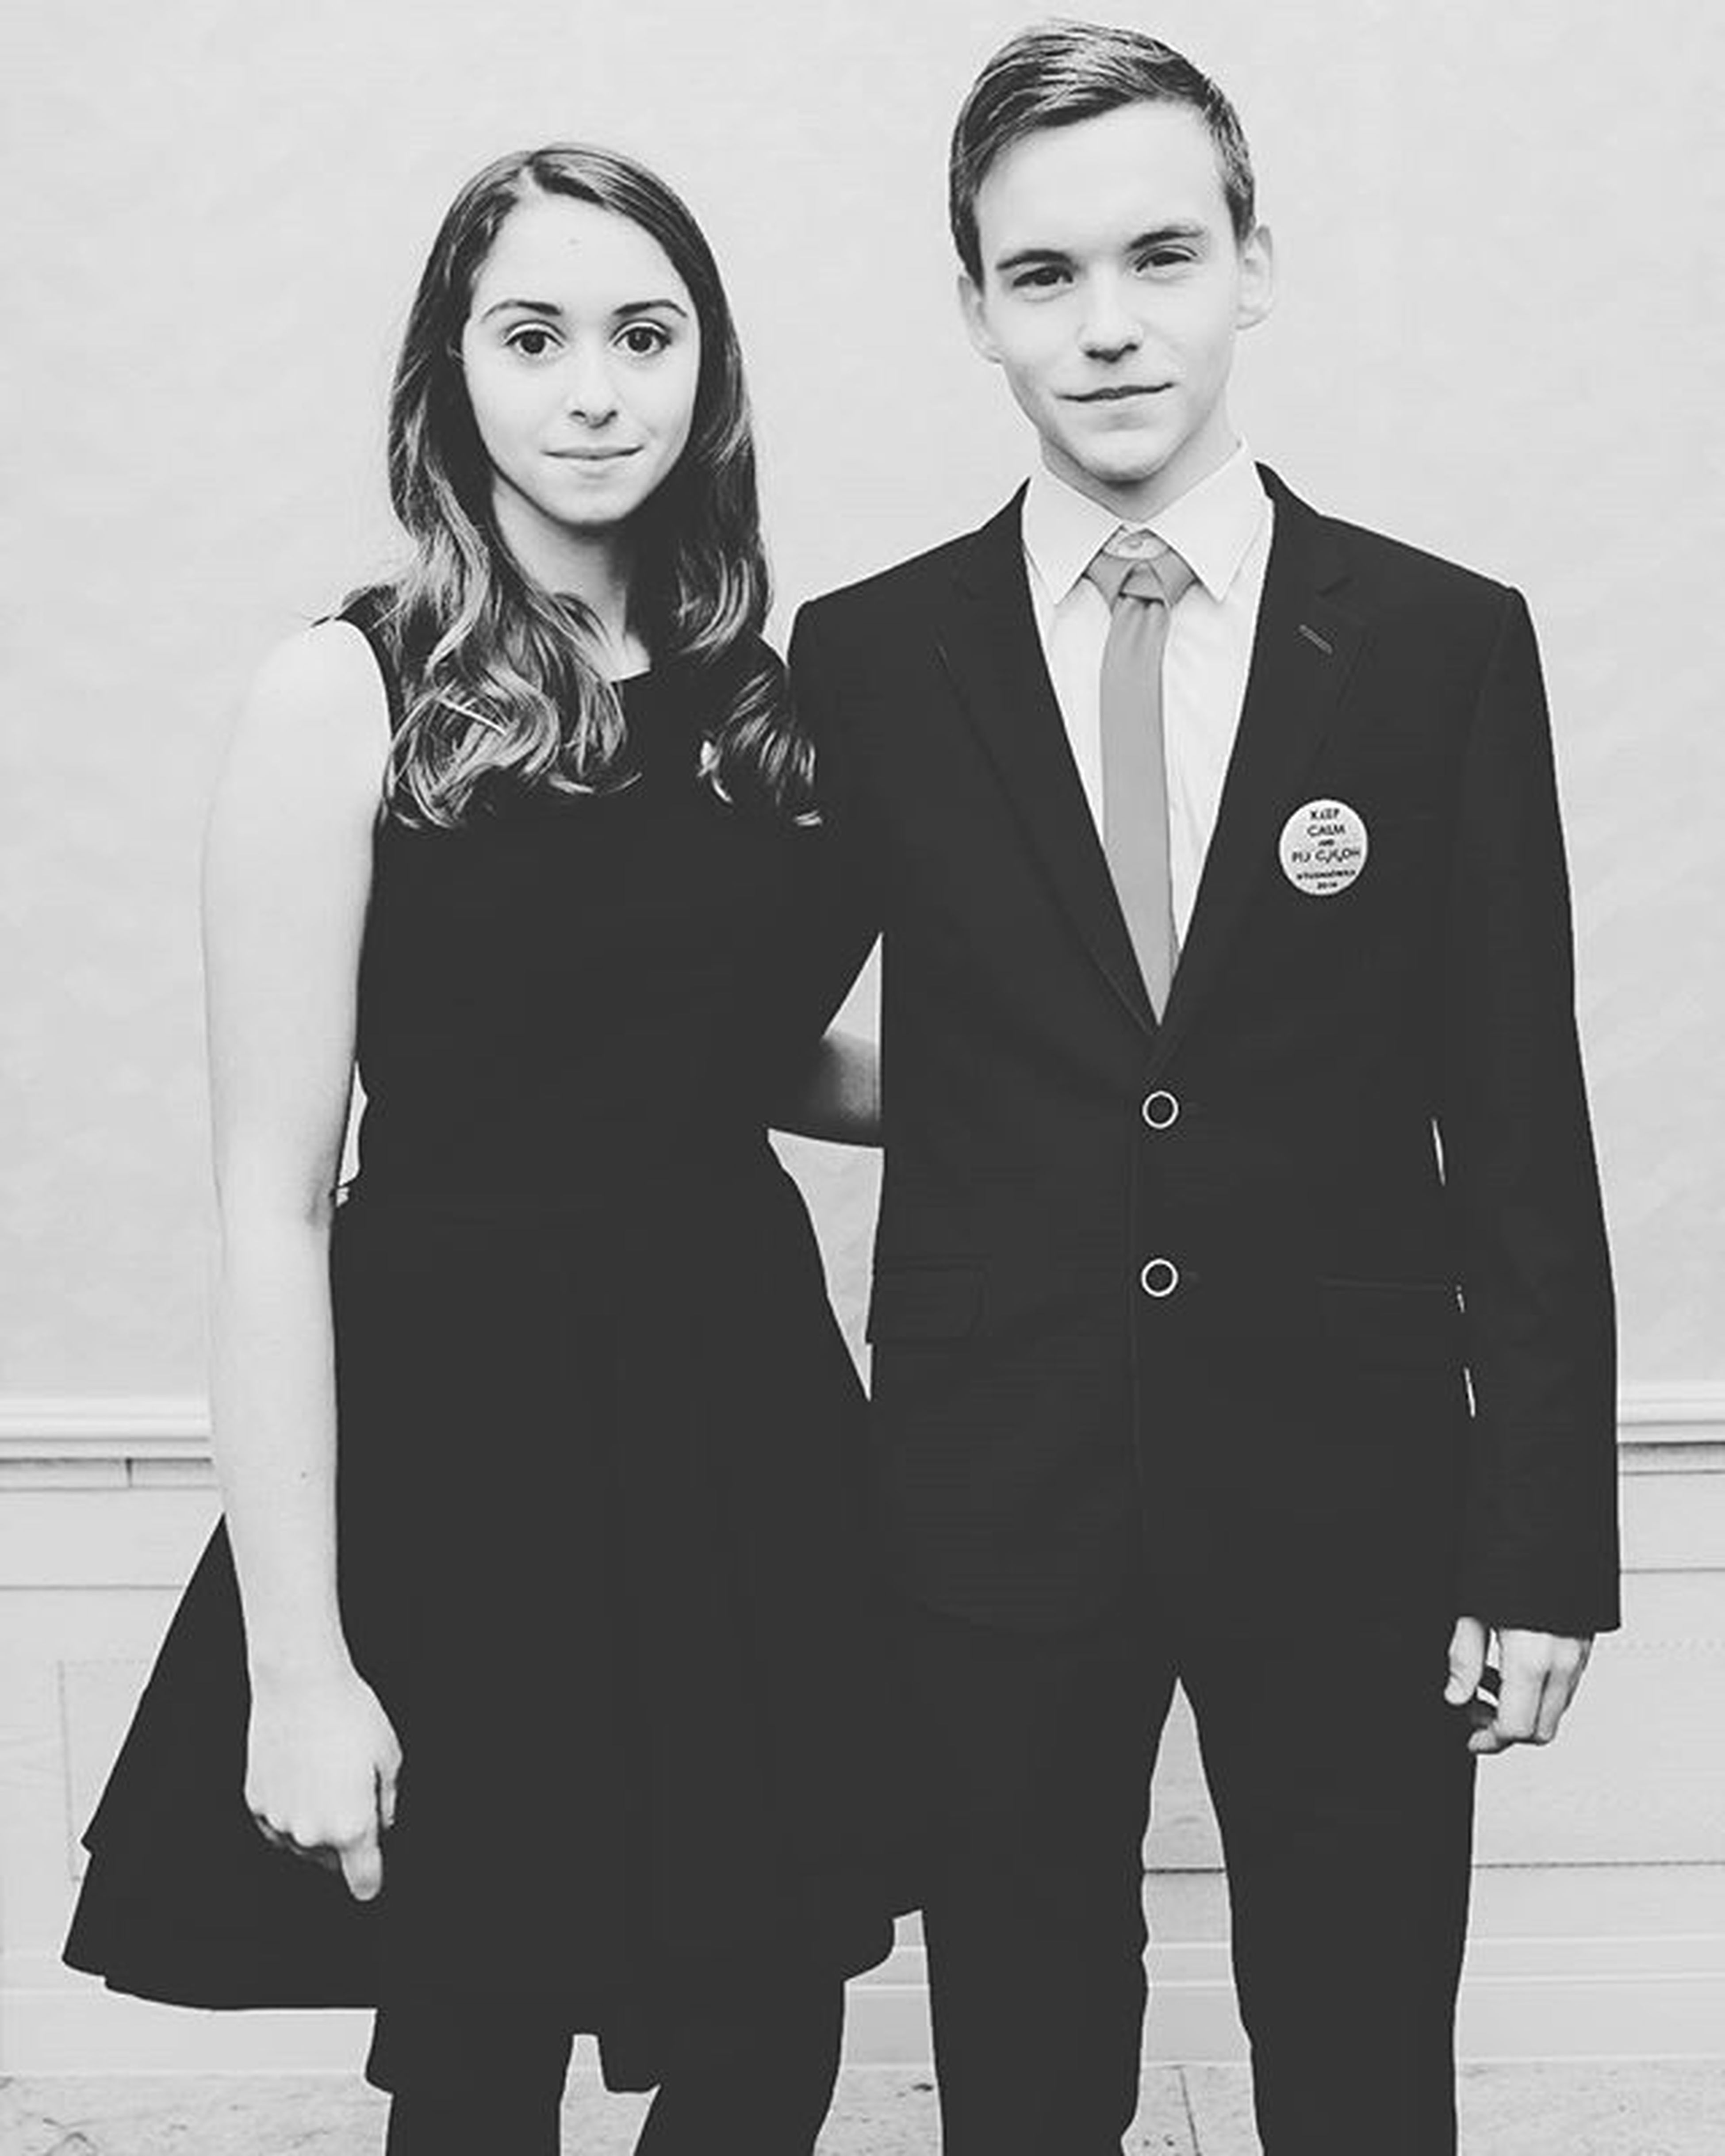 Studniówkowo Z Wercia Prom 2016 Fashion XD Polishboy  Polishgirl Friends We Are  The Best  Hashtags Modeling 500 TBT  L4l Fun Night C2H5OH Studniówka2016